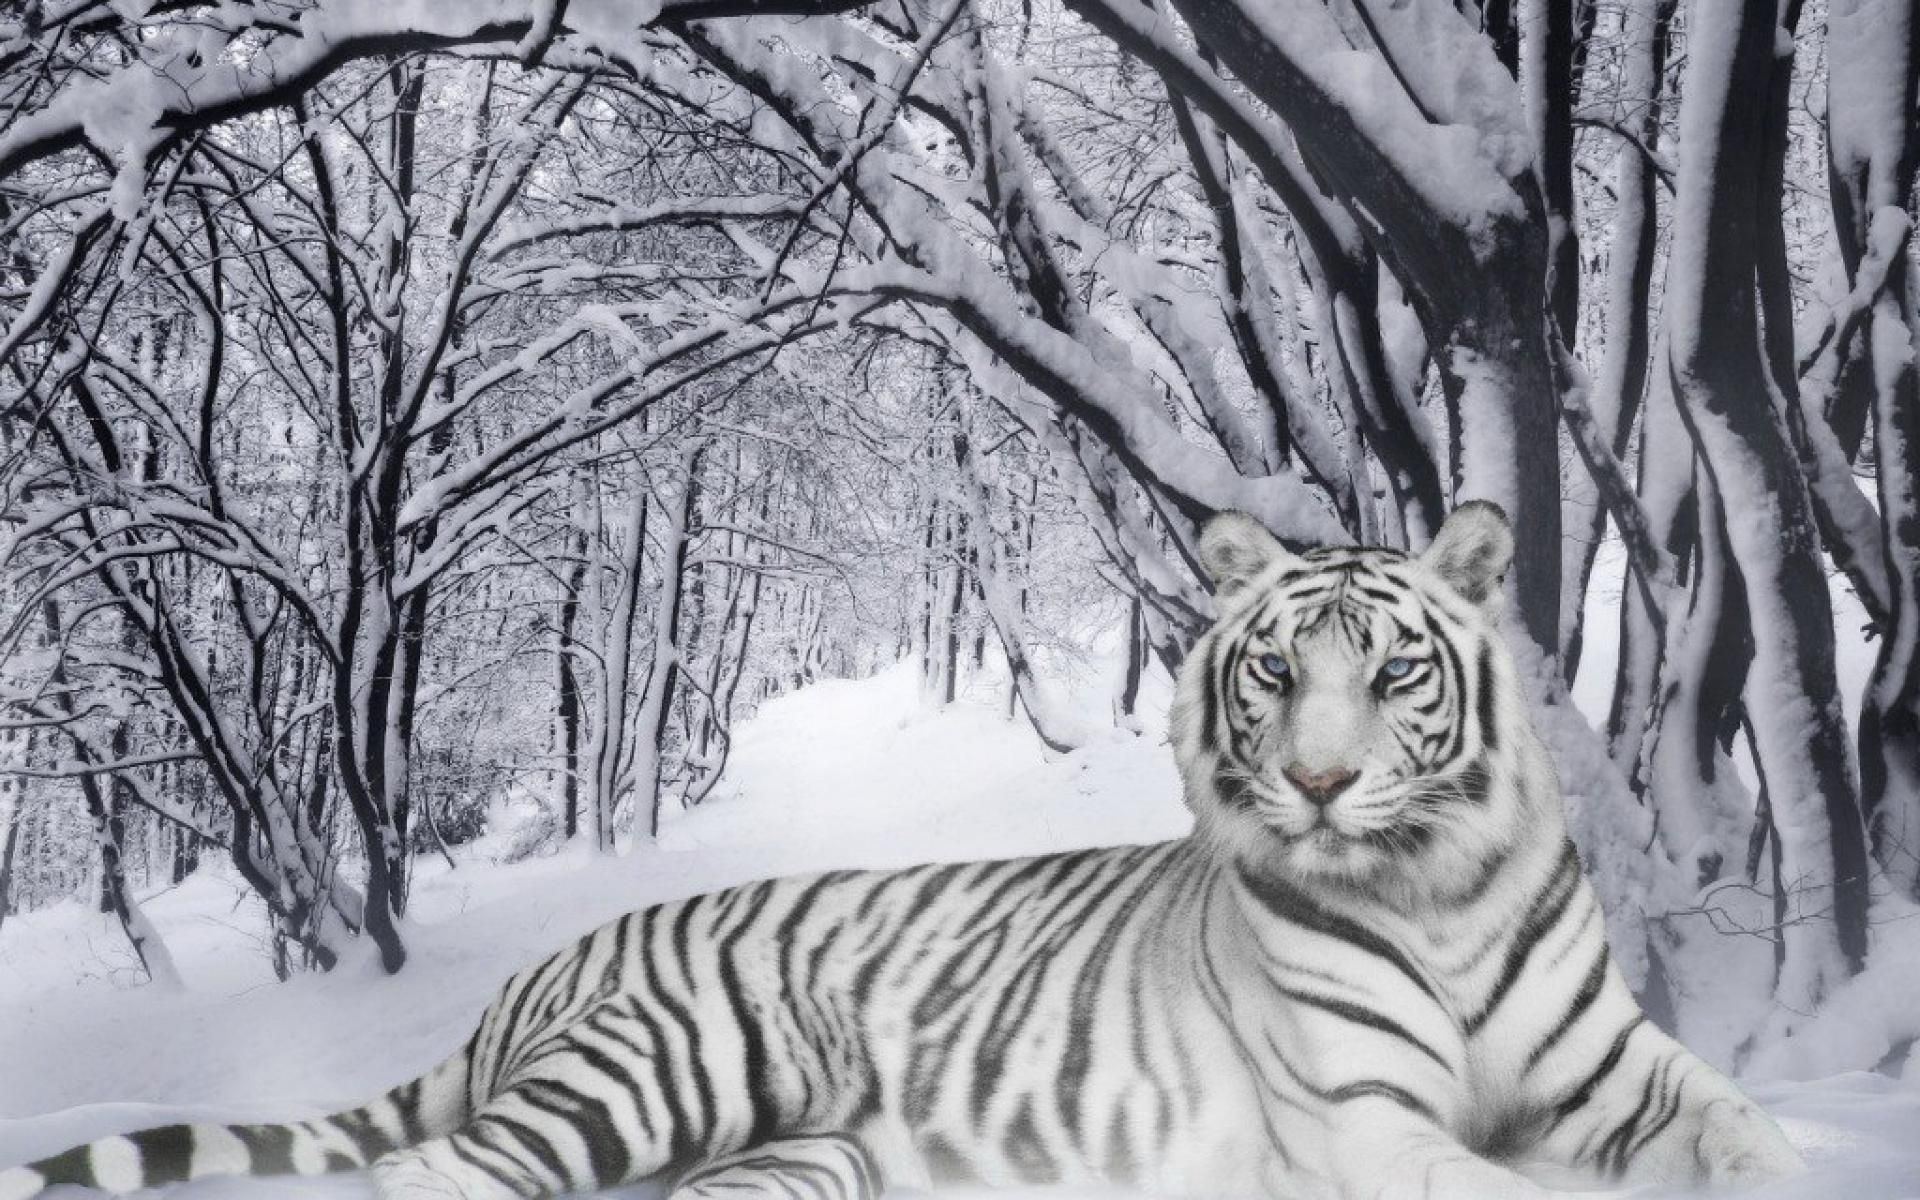 White Tiger Wallpapers Pet Tiger Tiger Pictures Snow Tiger